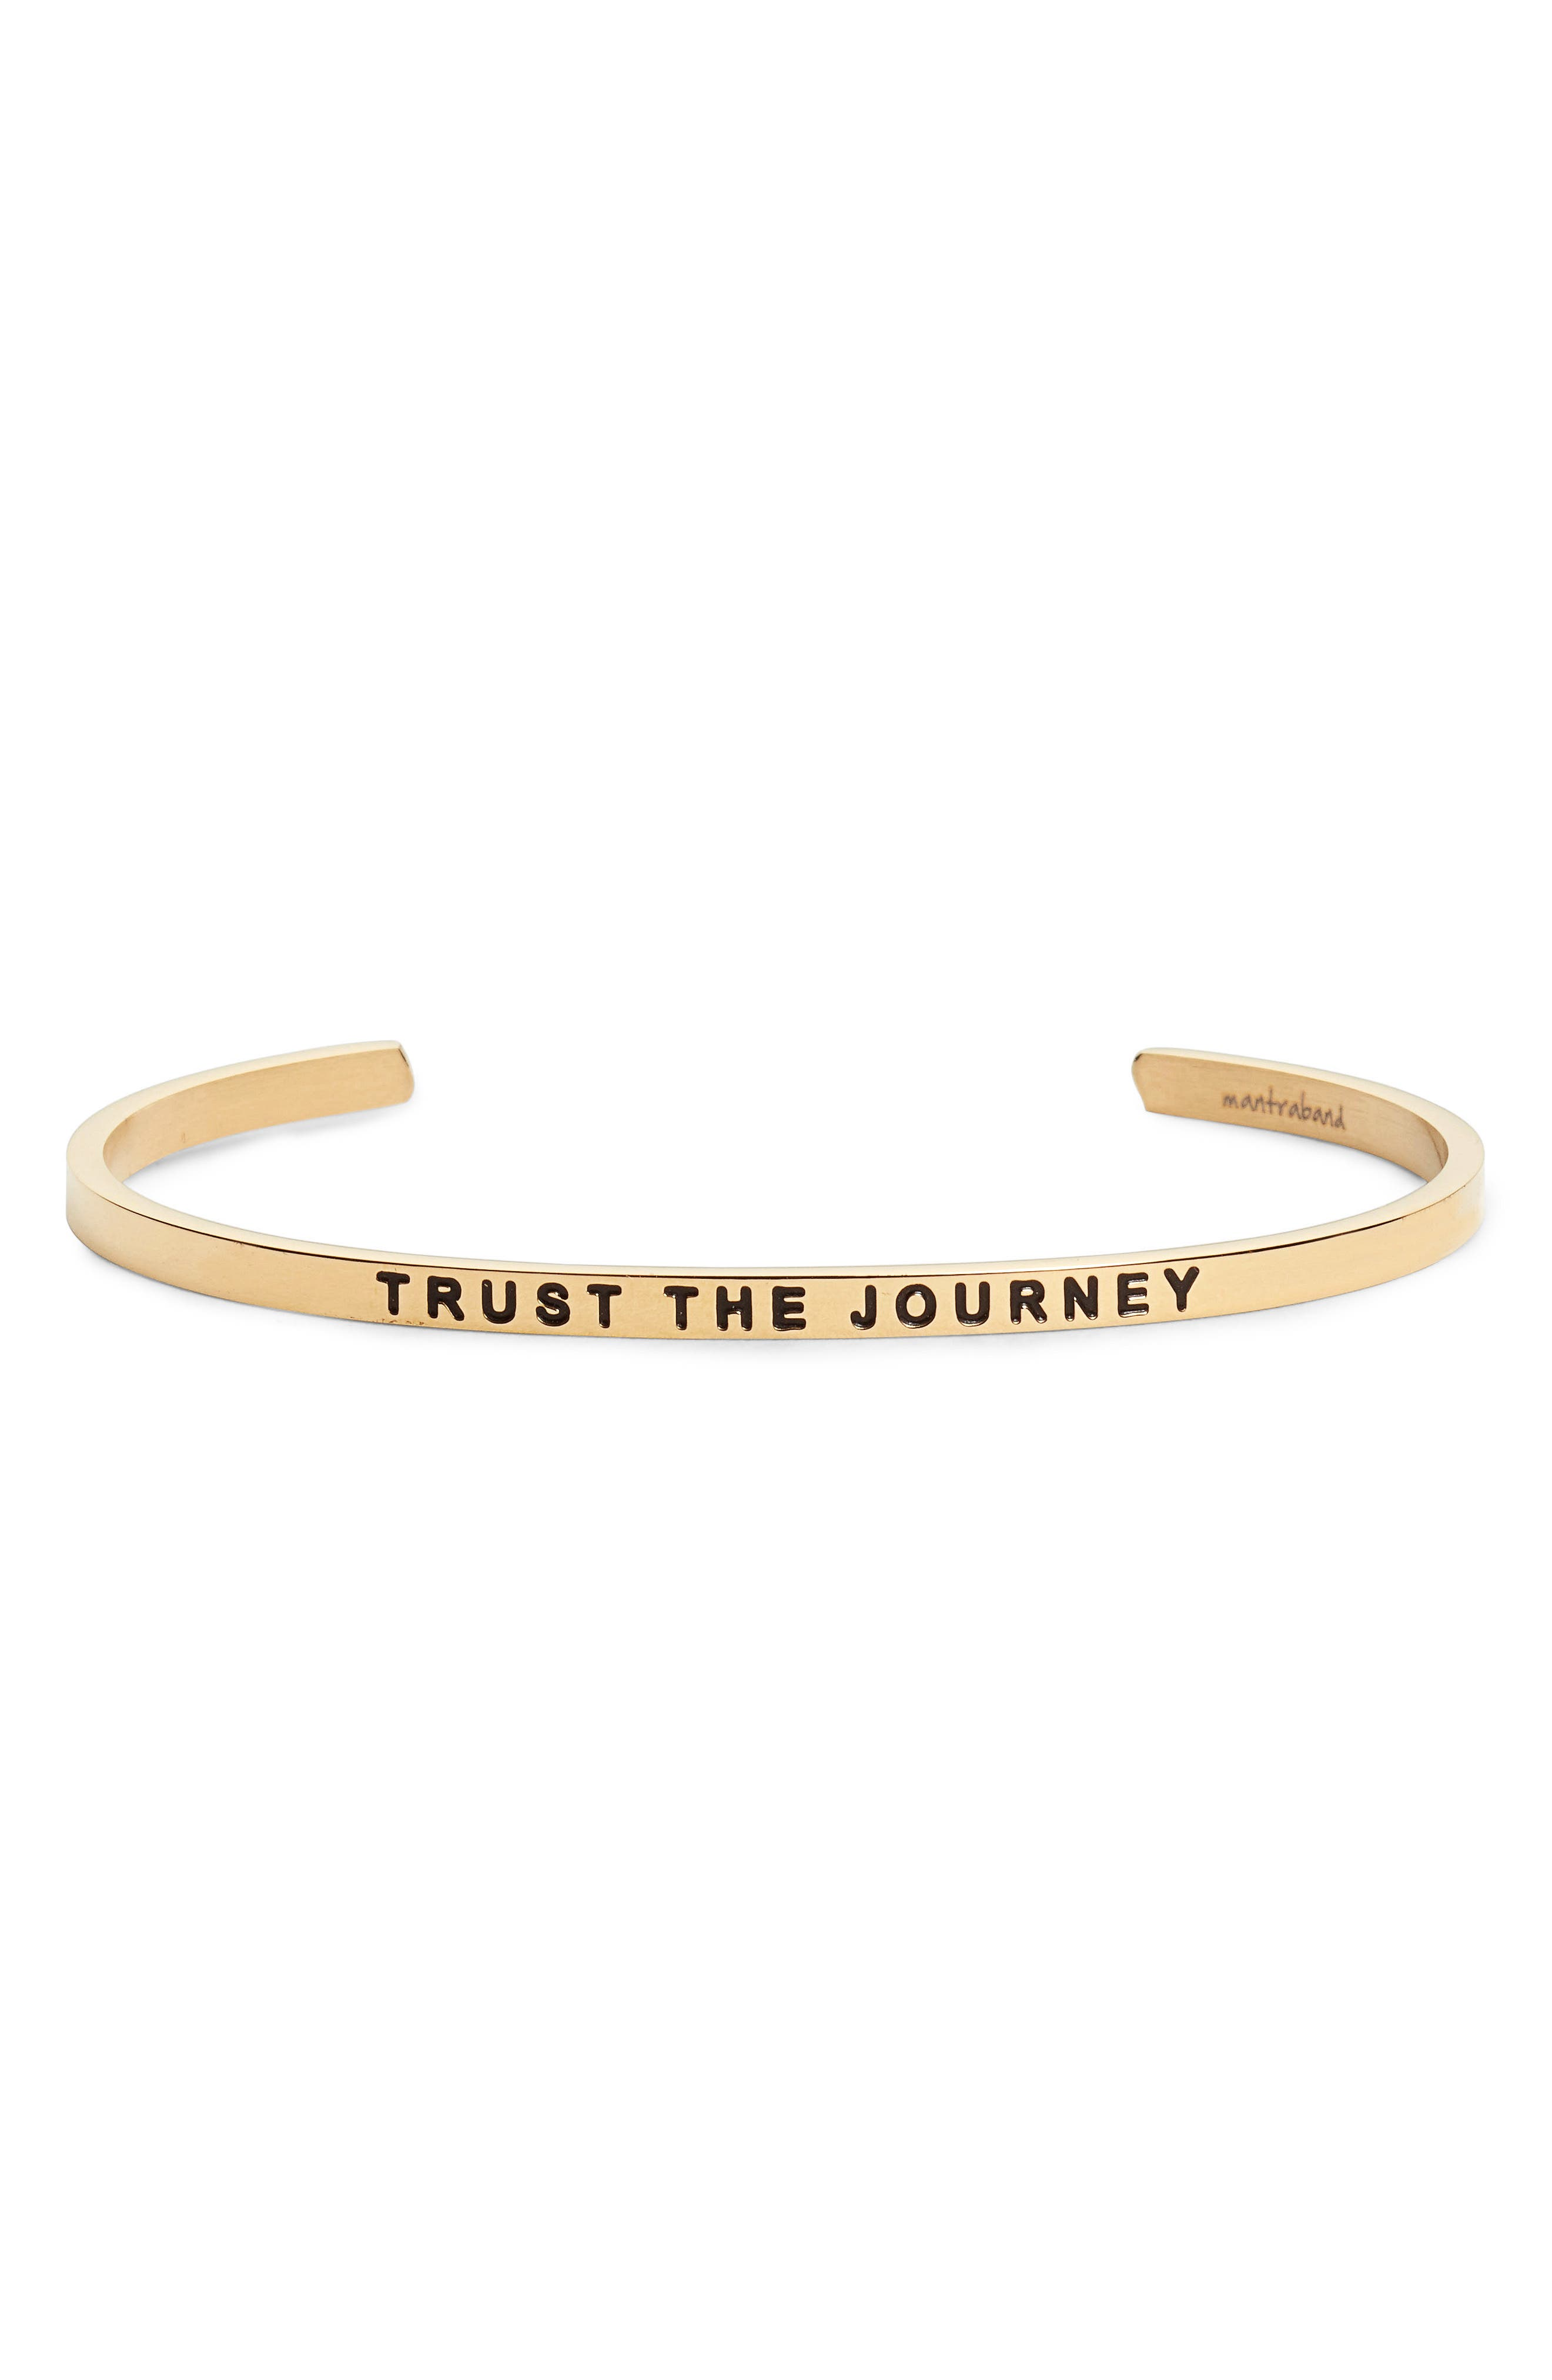 Trust the Journey Cuff,                         Main,                         color, Gold